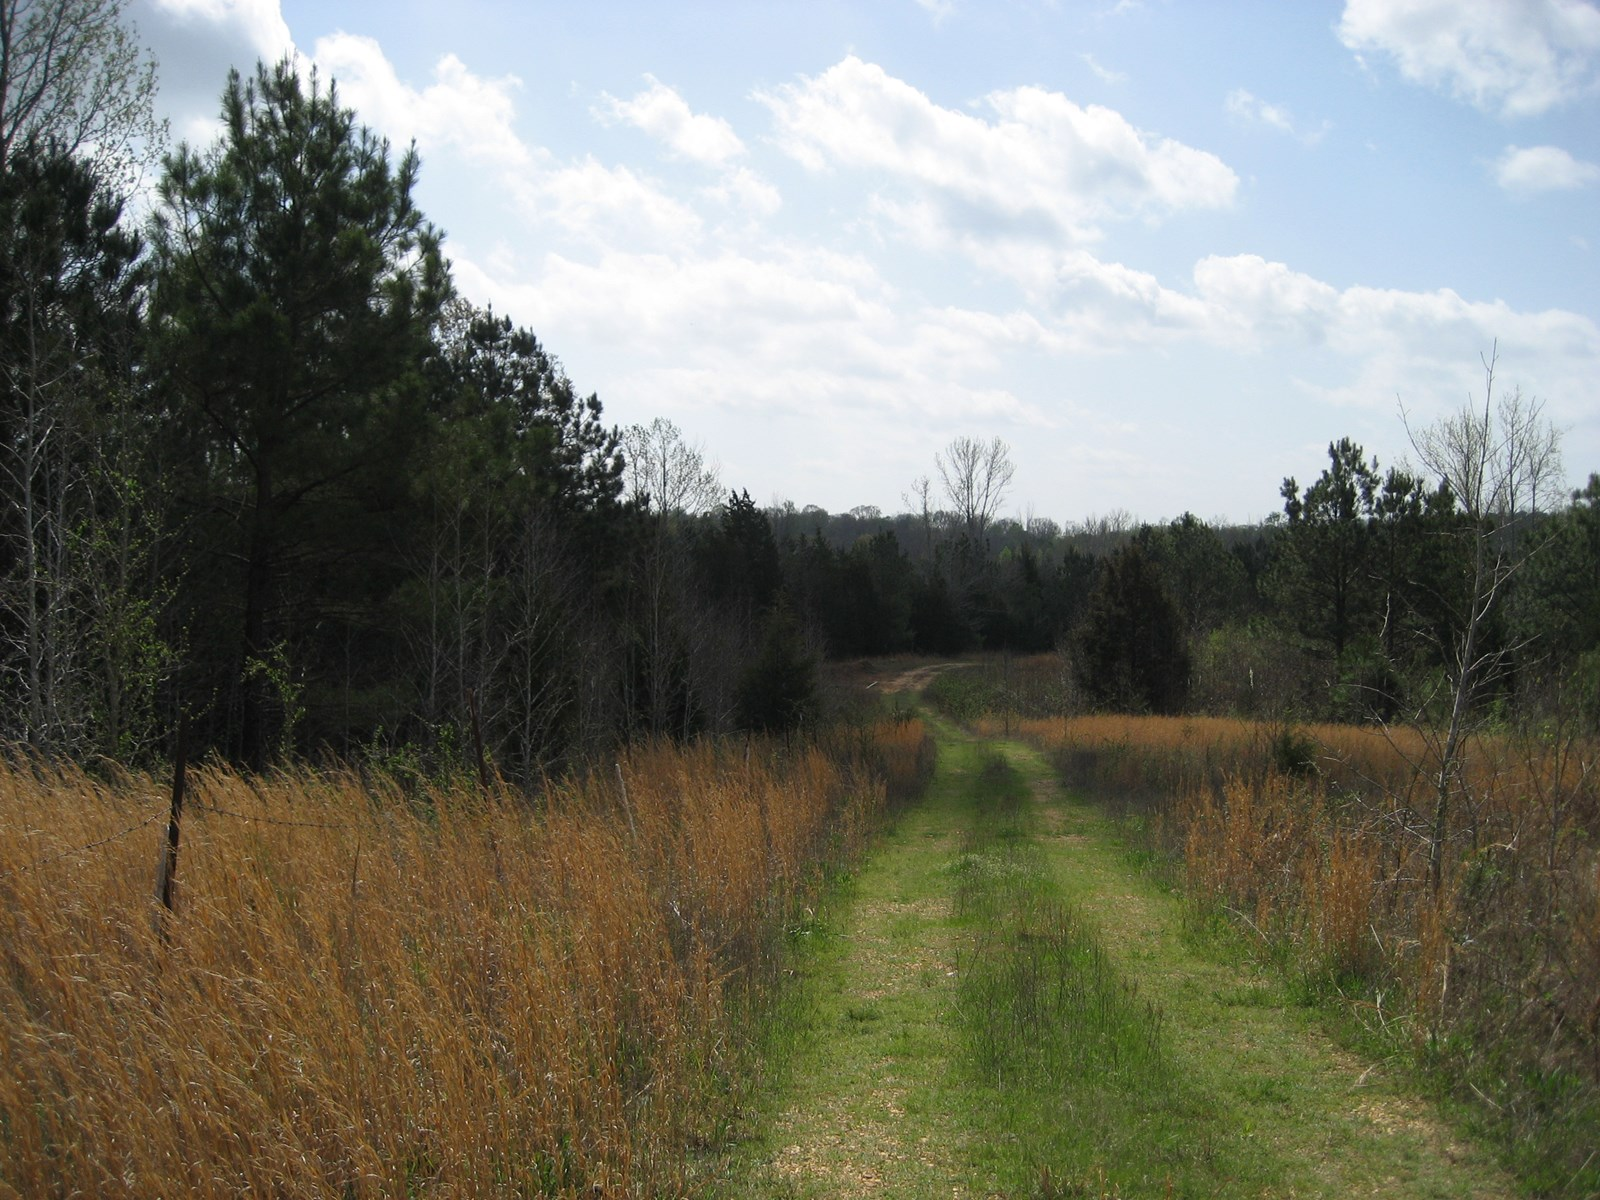 LARGE ACREAGE TN LAND FOR SALE WITH CREEK & TIMBER